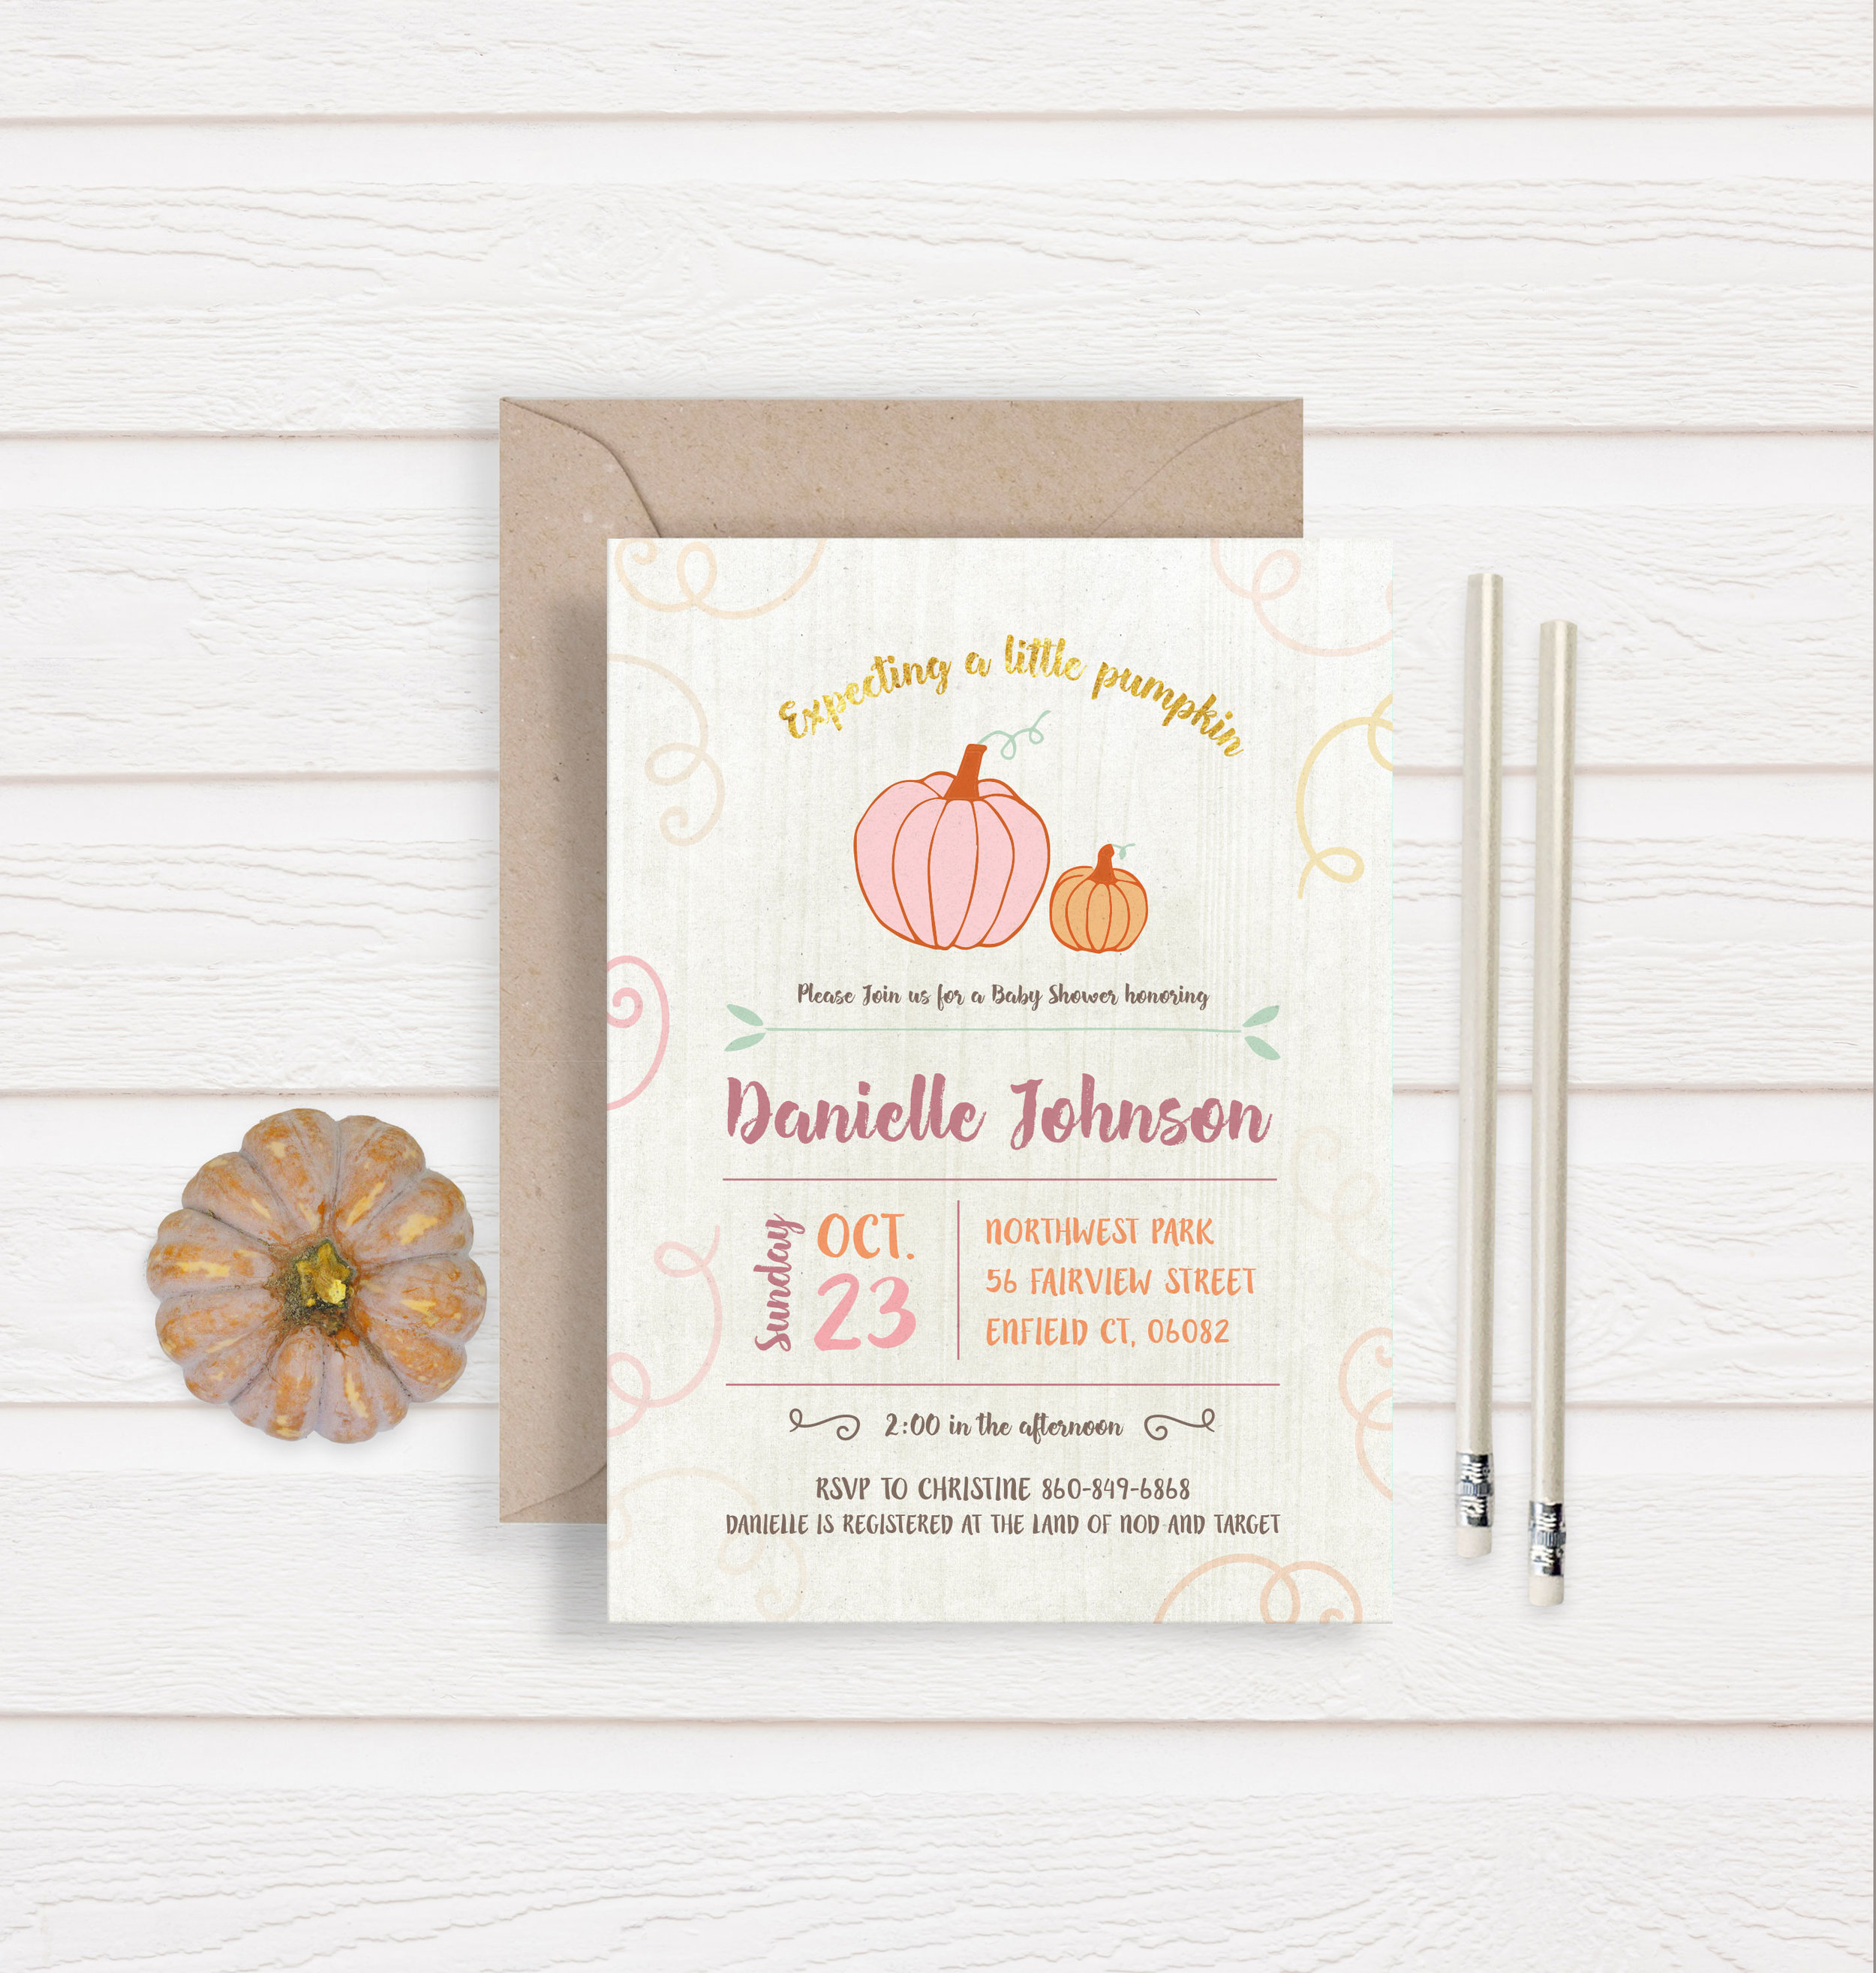 girl-little-pumpkin-mock-up-invitation.jpg